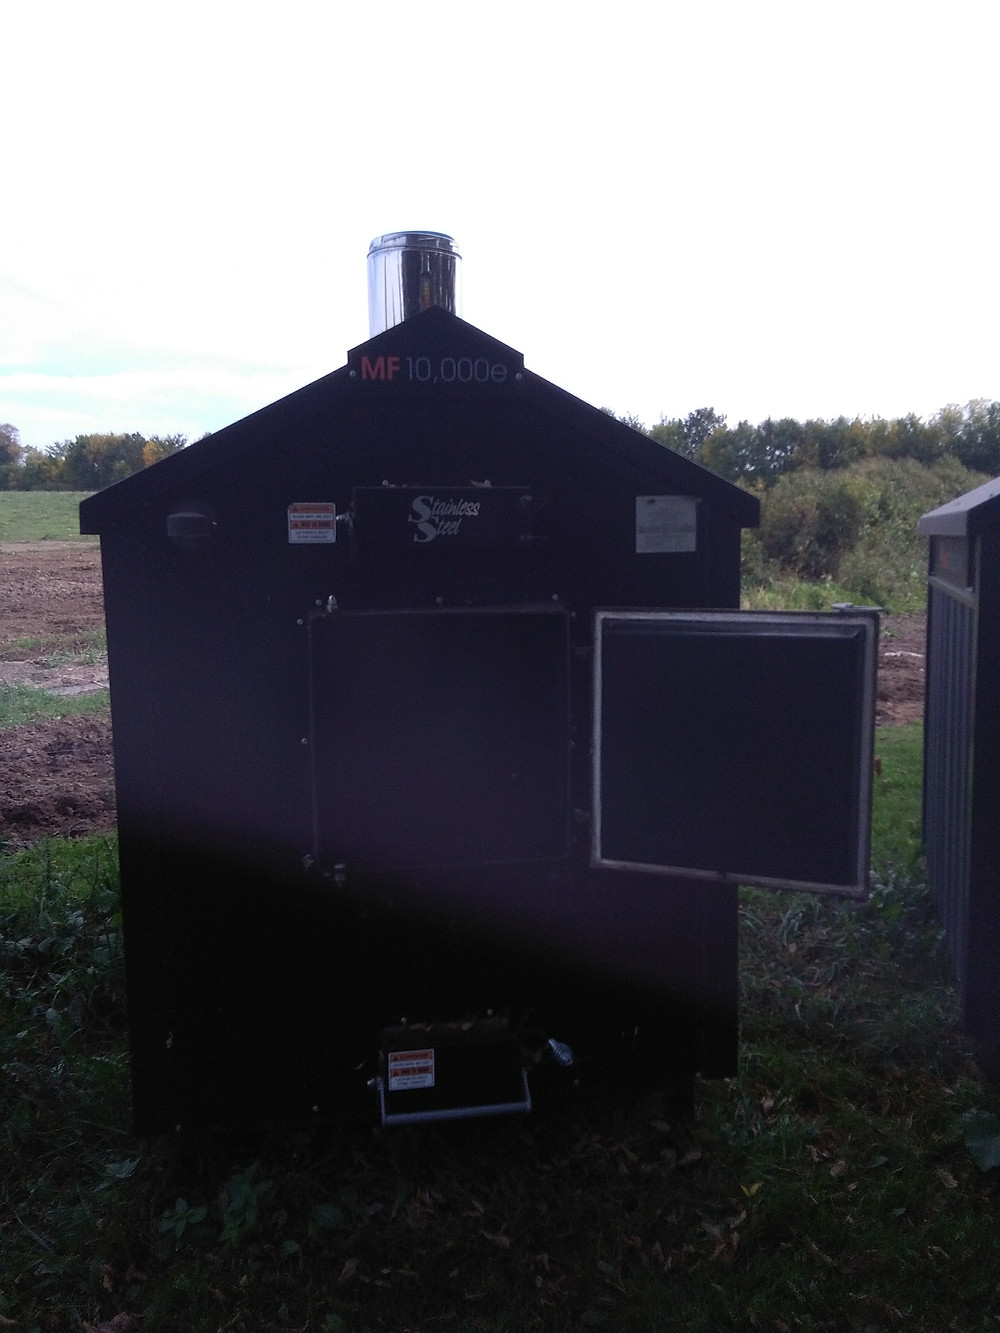 Used HeatMaster MF 10,000e outdoor wood boiler